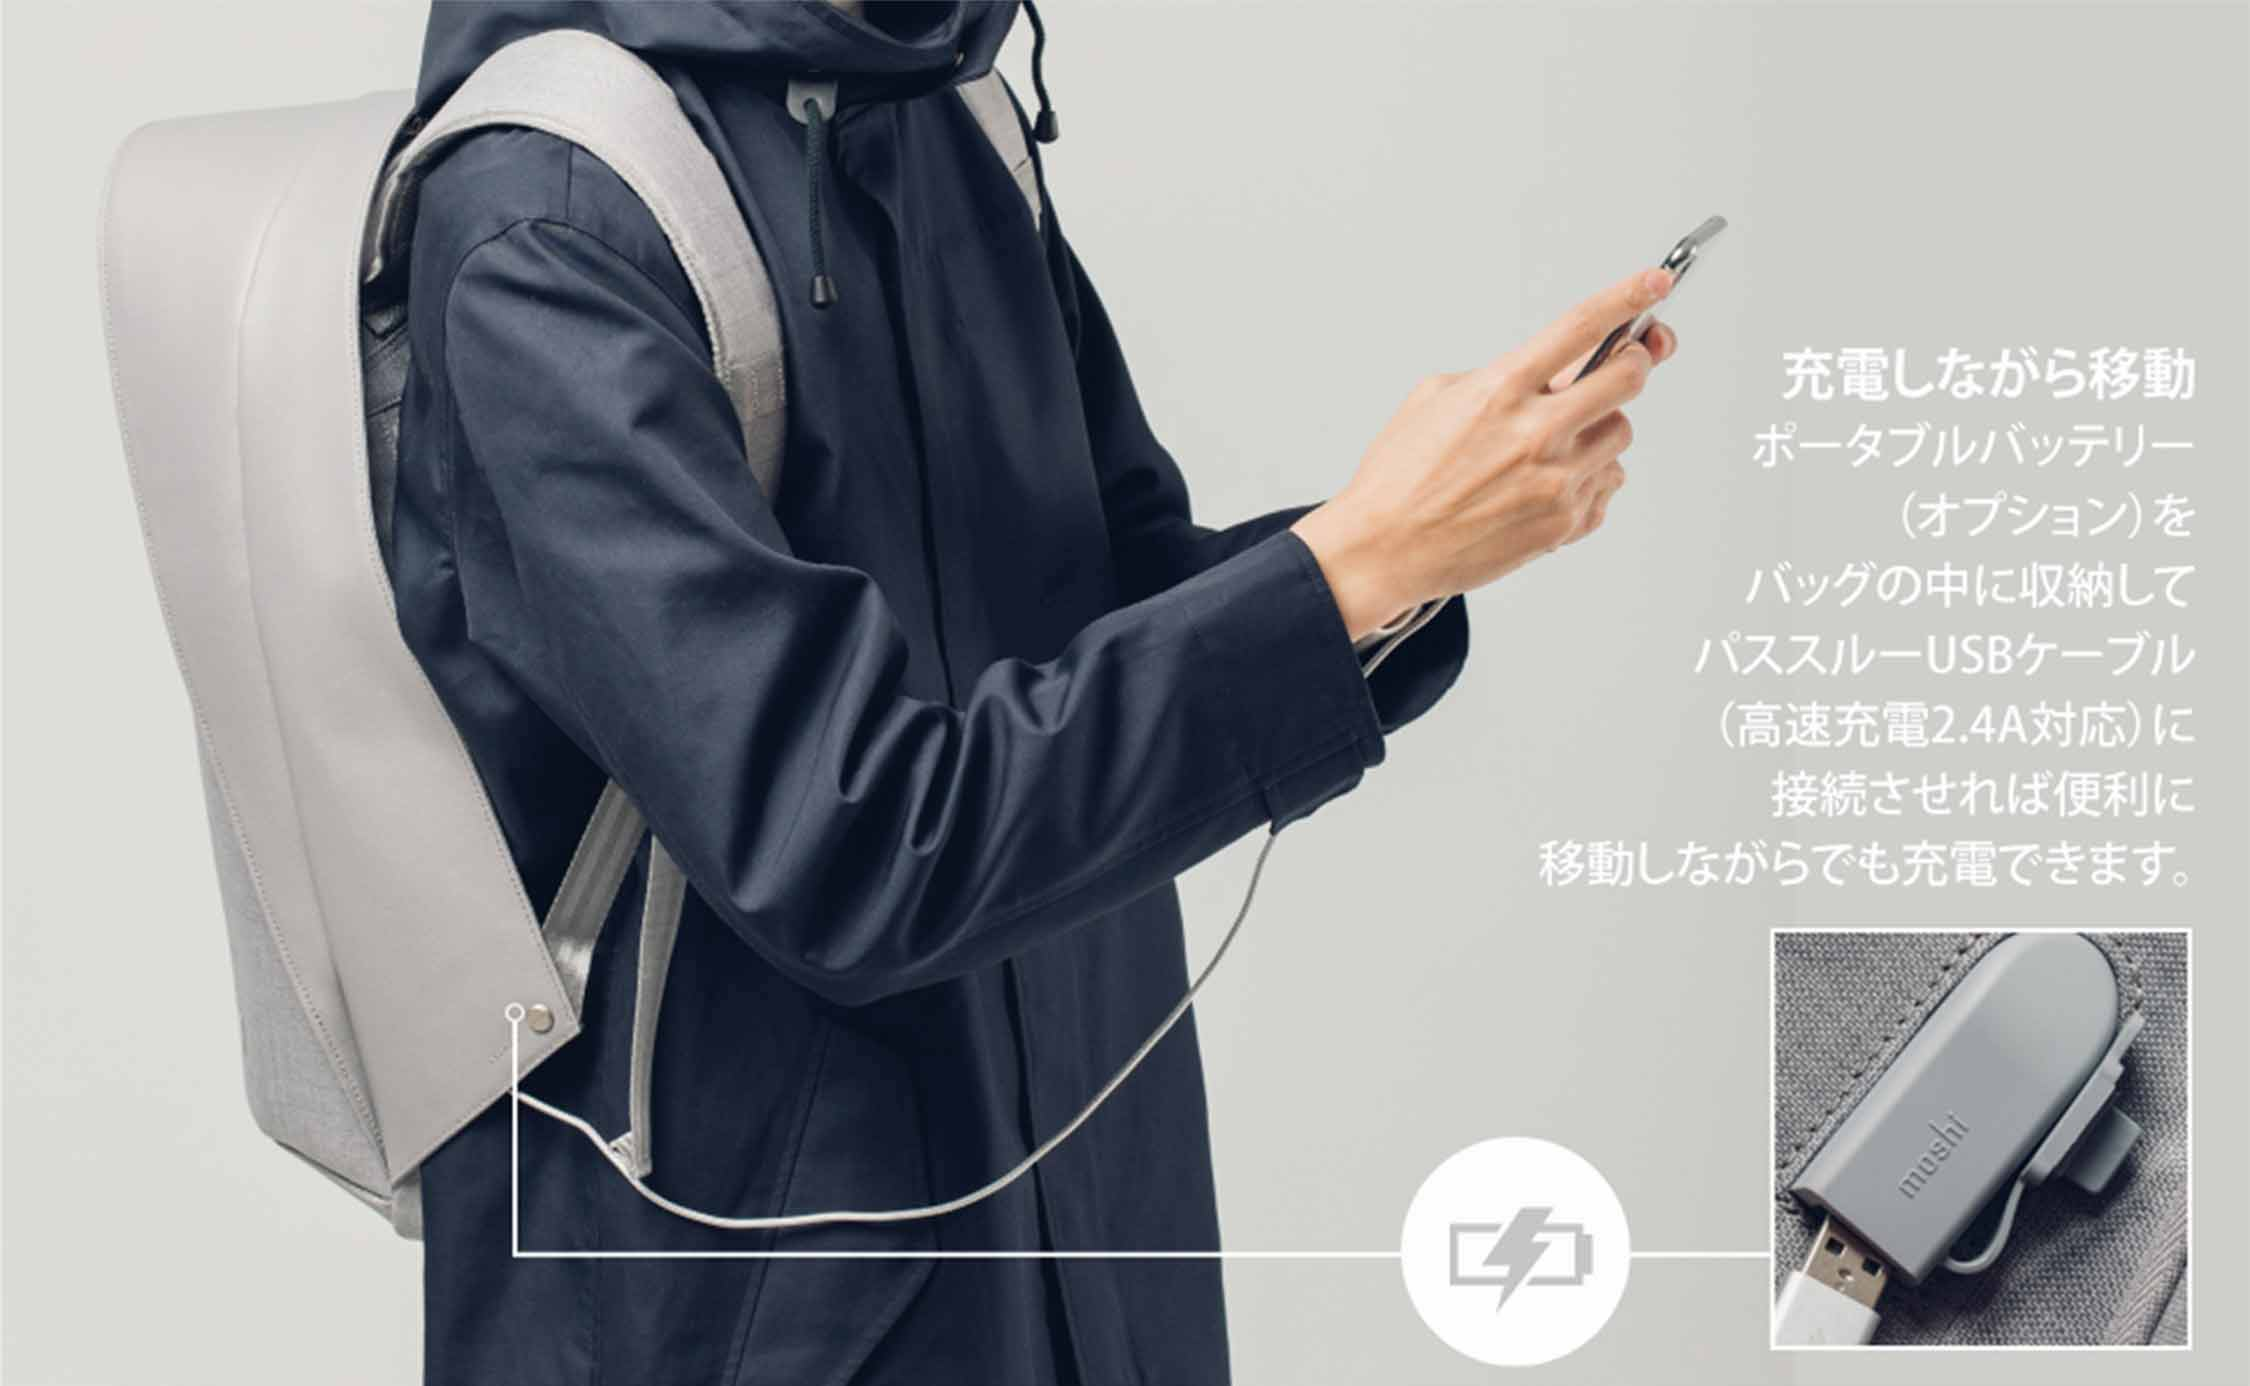 moshi tego backpack USB 充電